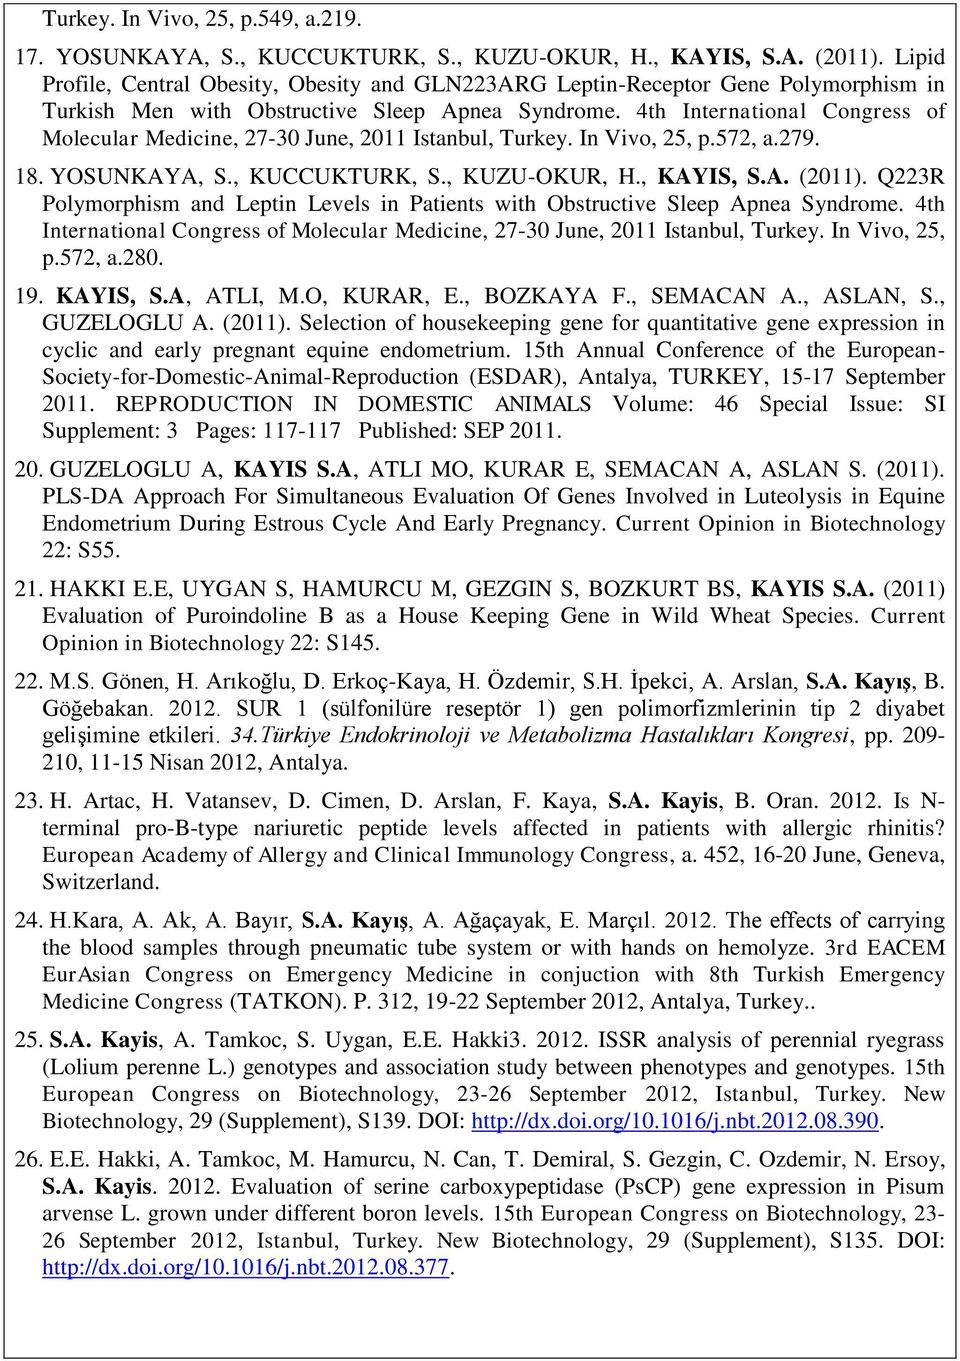 4th International Congress of Molecular Medicine, 27-30 June, 2011 Istanbul, Turkey. In Vivo, 25, p.572, a.279. 18. YOSUNKAYA, S., KUCCUKTURK, S., KUZU-OKUR, H., KAYIS, S.A. (2011).